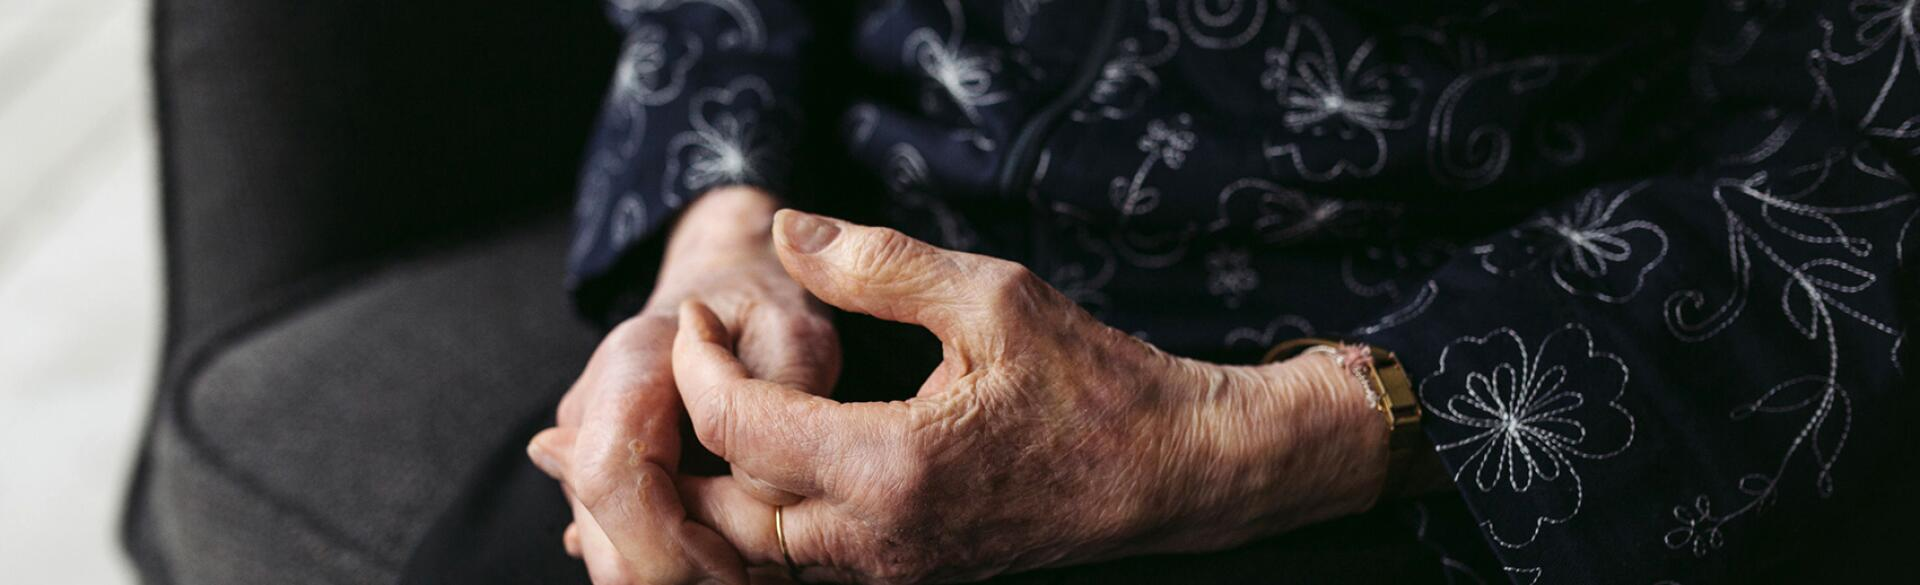 closeup of elderly woman's hands